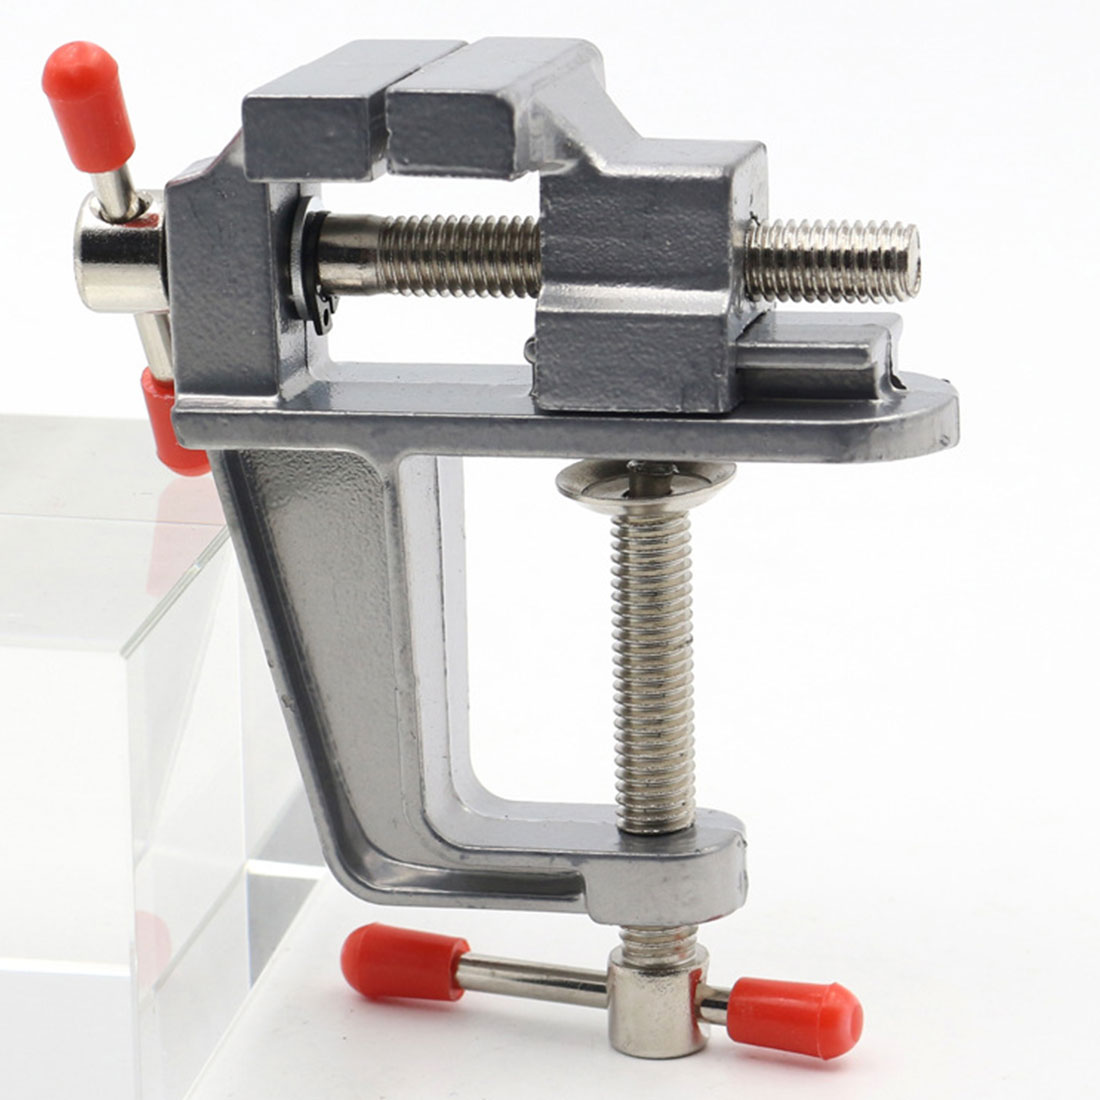 Mini Tool Vice 30mm Clamp Opening Aluminum Small Jewelers Hobby Clamp On Table Bench Vise image